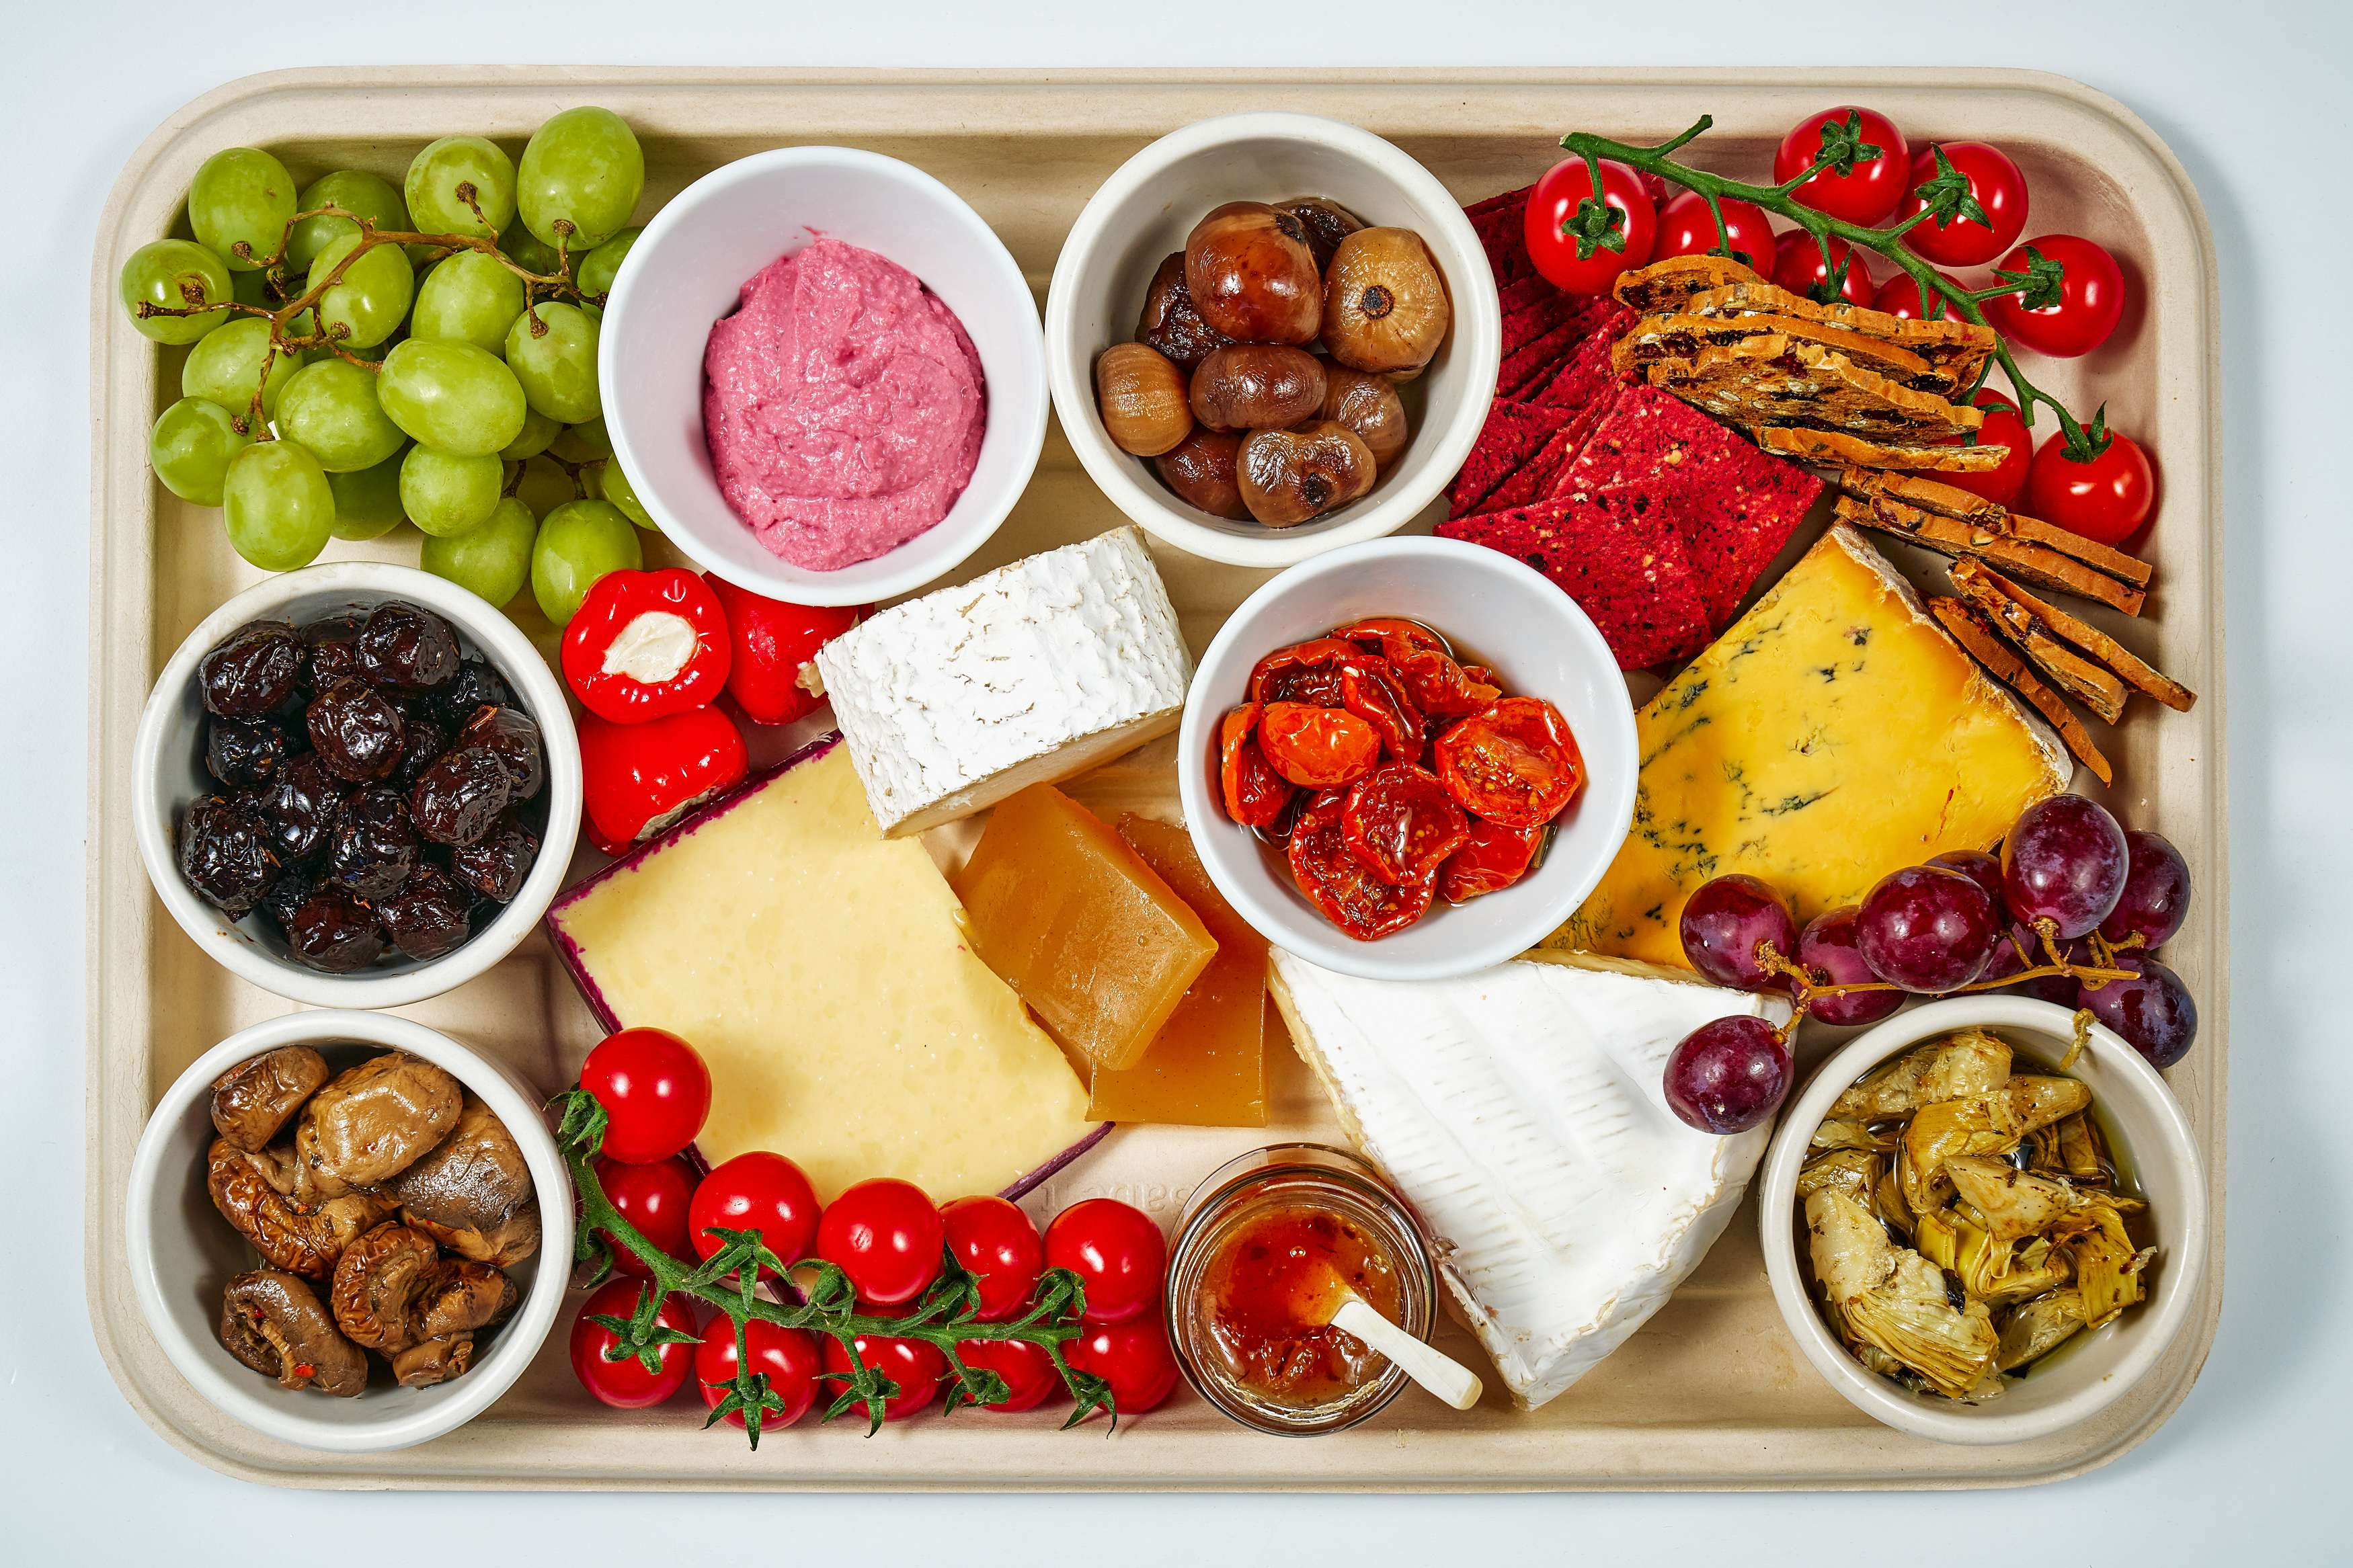 Vegetarian Cheese & Antipasti Platter (Large) Picnic Goods